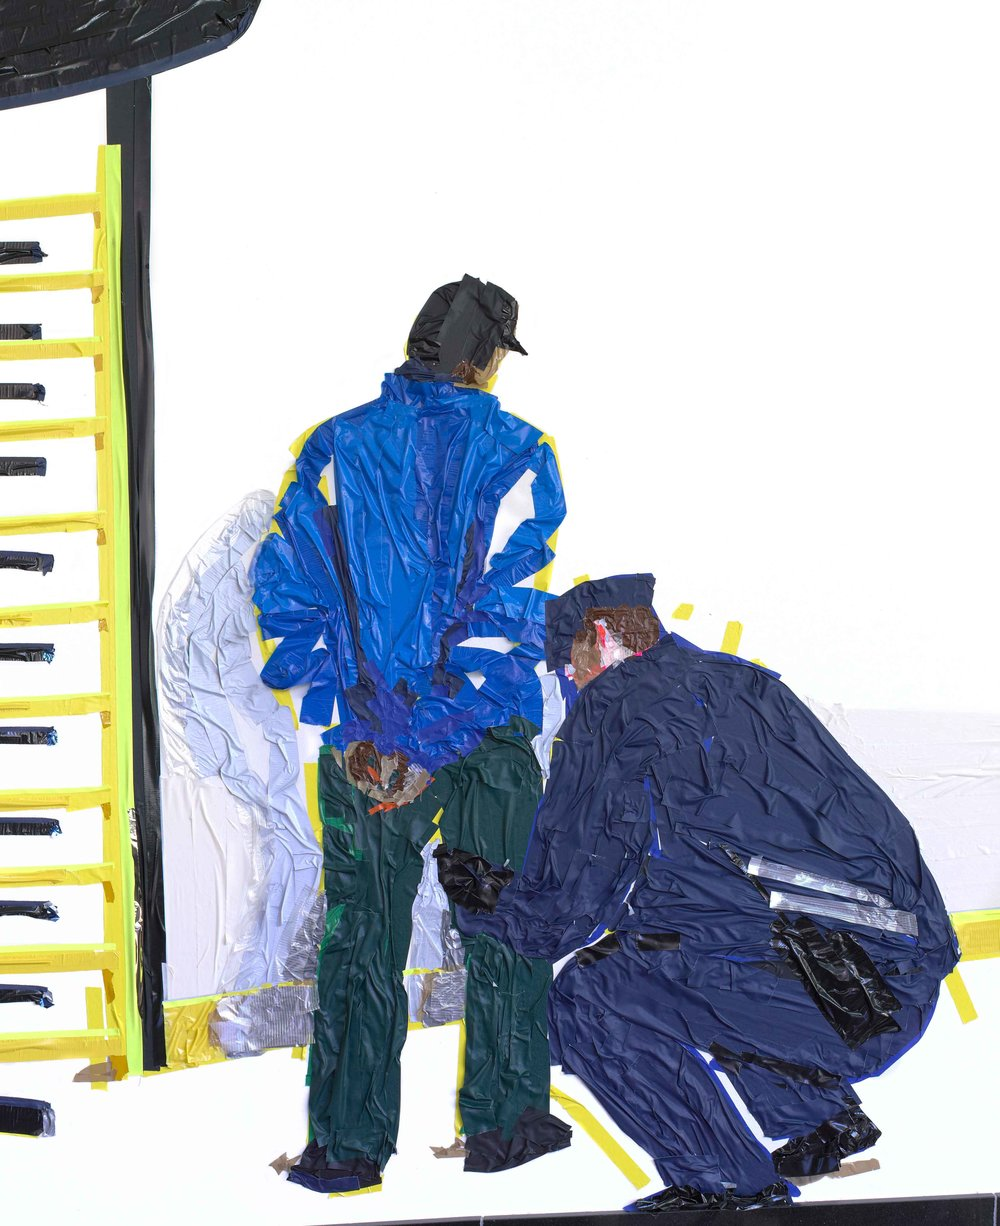 Stop and Frisk (detail), 10'x20', tape on wall, 2013